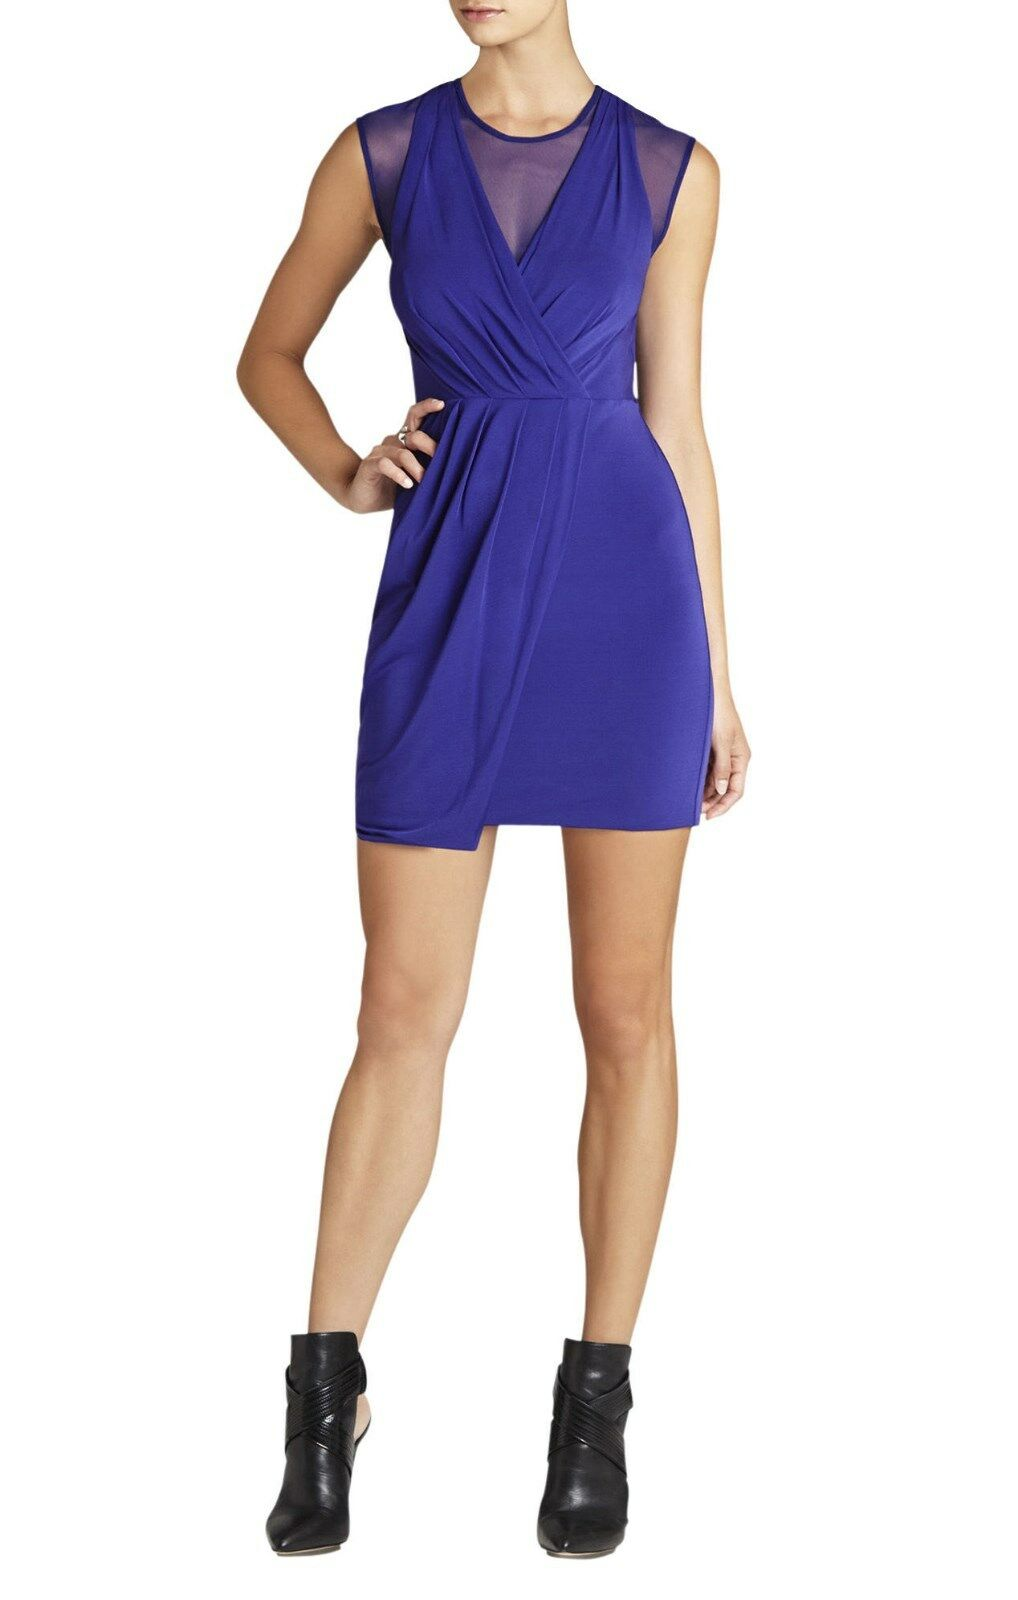 NEW BCBG MAX AZRIA blueE BRENNA SHEER INSET RUCHED DRESS NYC66B82 AM533 SIZE XS